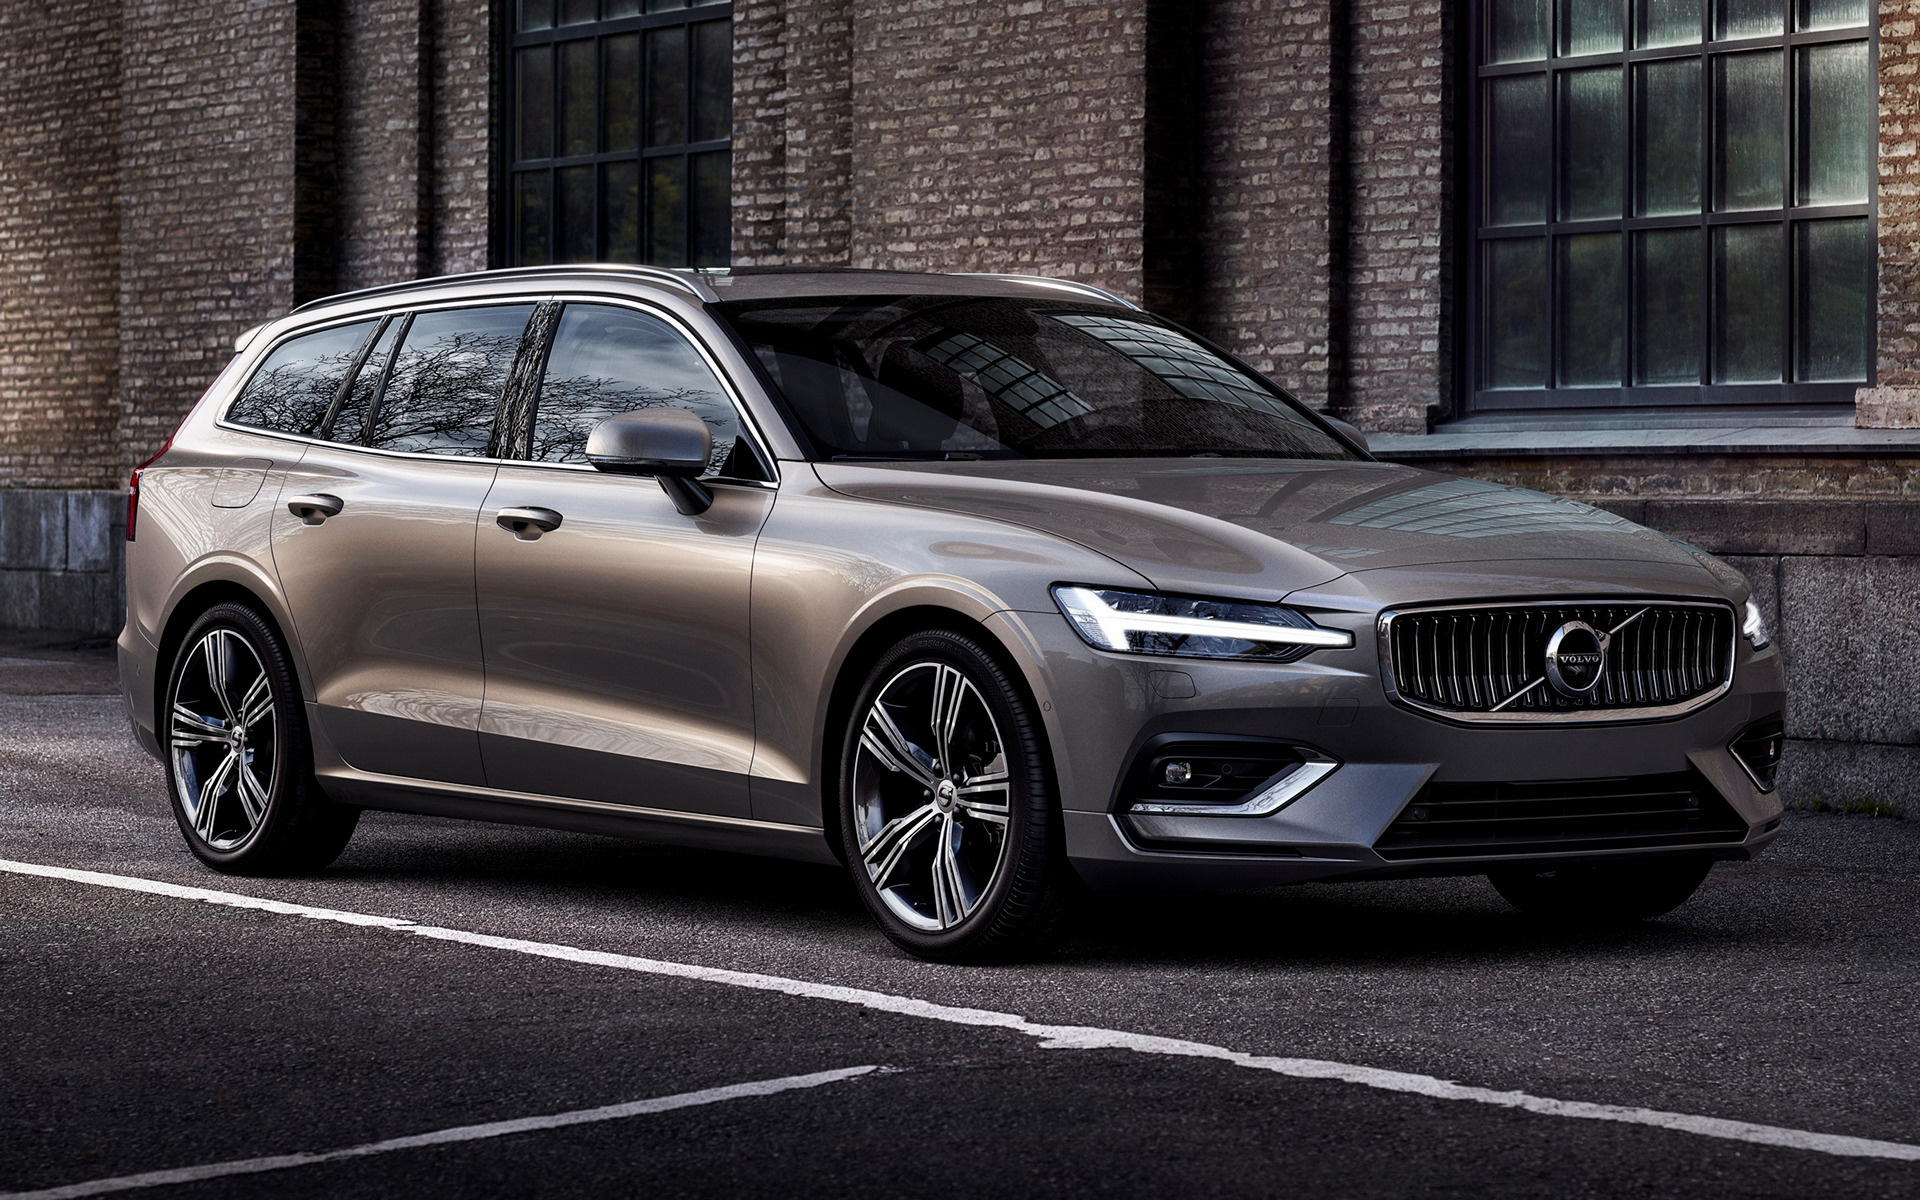 2018 Volvo V60 Inscription   Wallpapers and HD Images Car Pixel 1920x1200